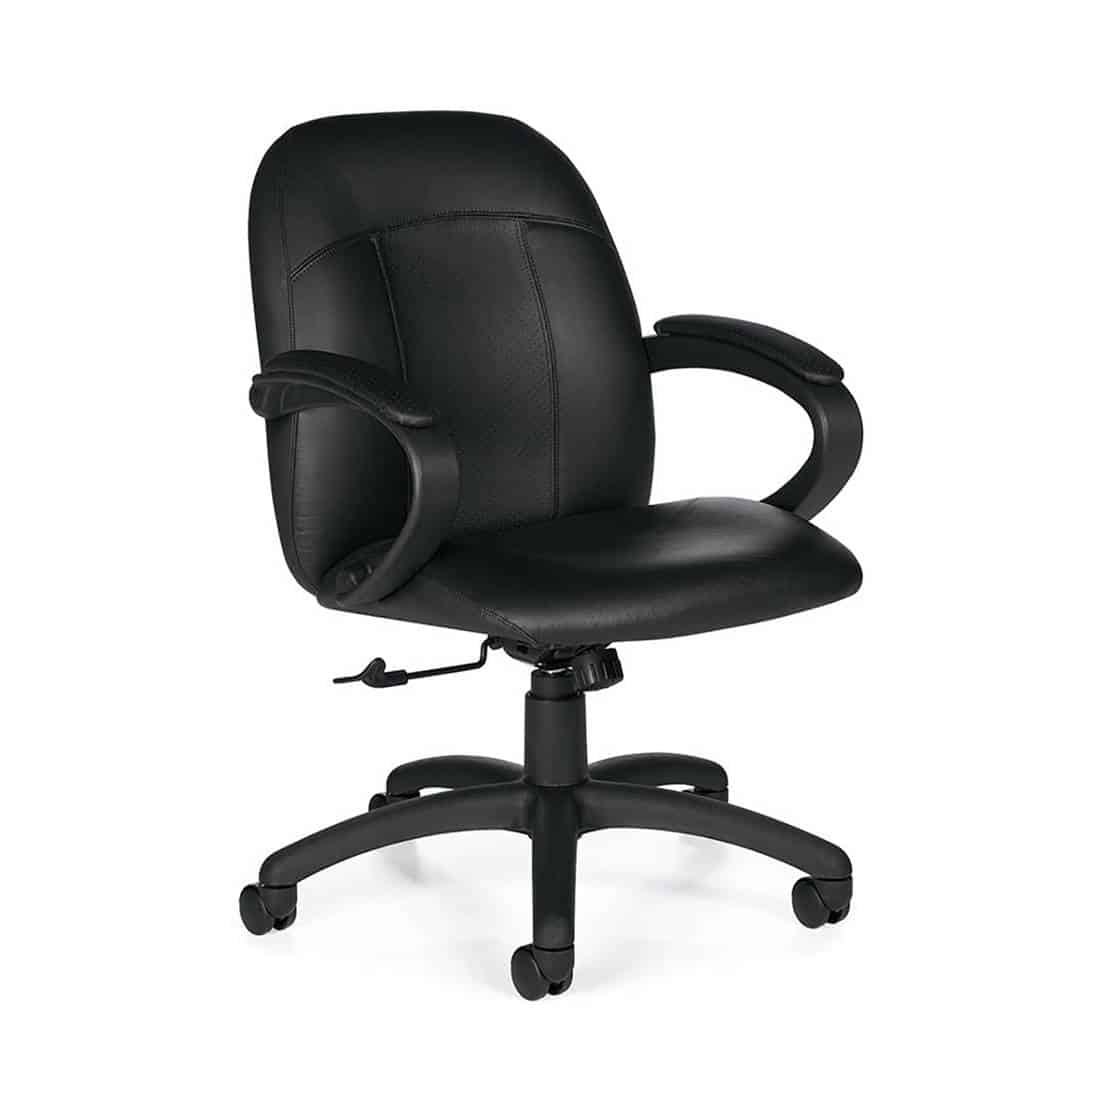 Global Tamiri Low Back Conference Room Chair Upholstered mock leather